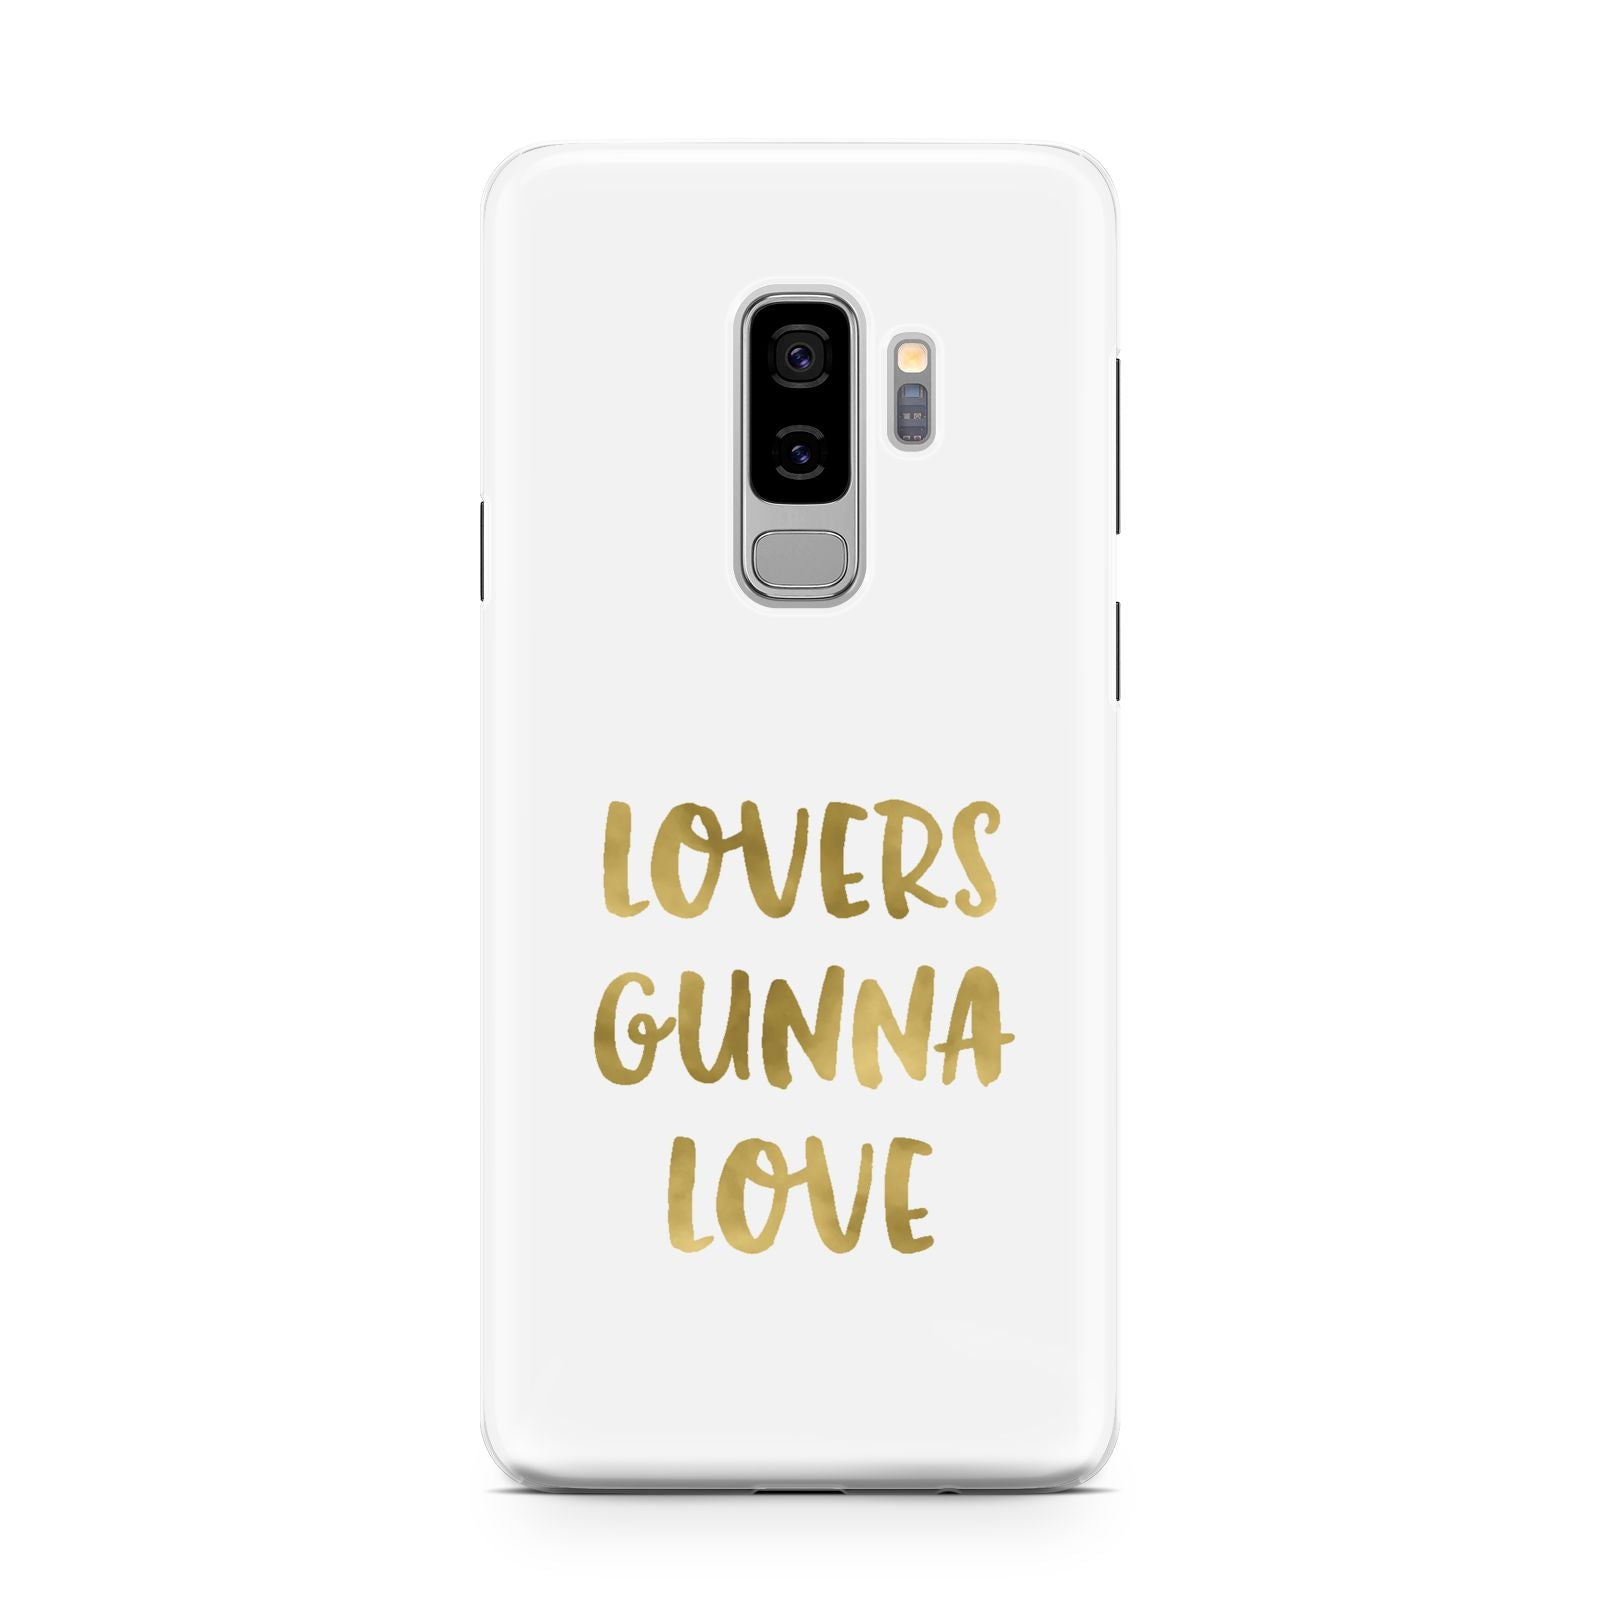 Lovers Gunna Love Real Gold Foil Samsung Galaxy S9 Plus Case on Silver phone